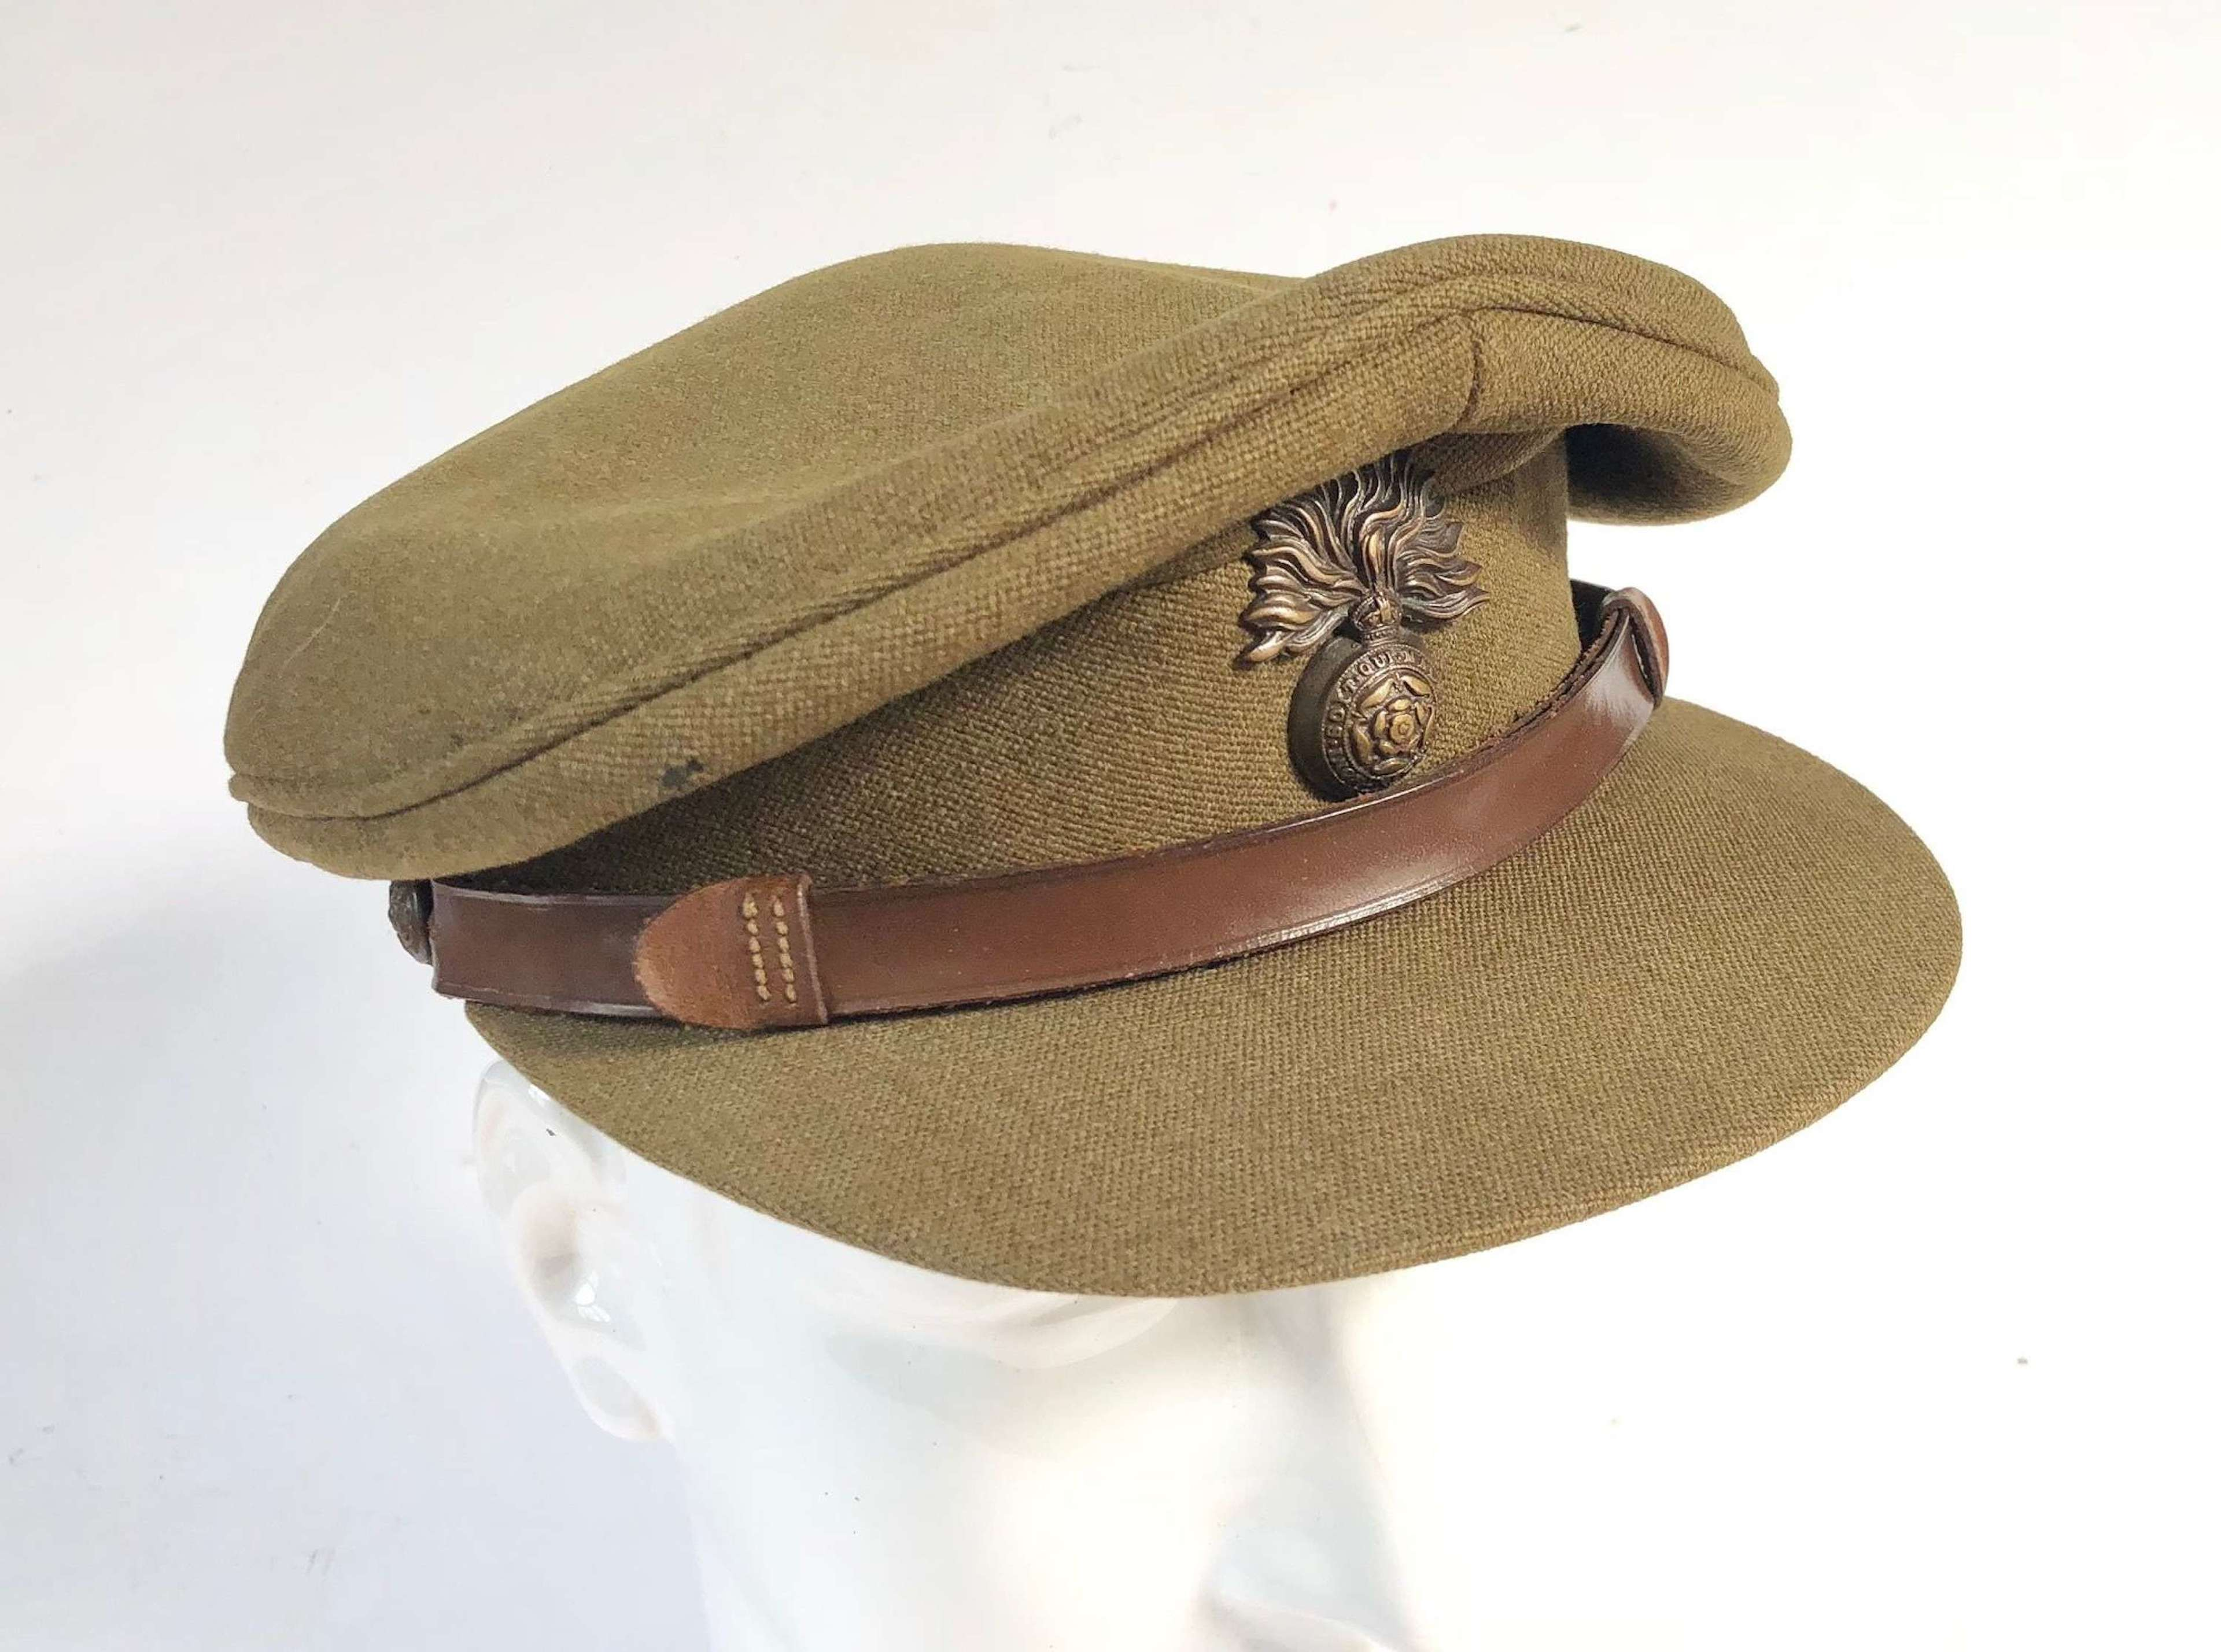 WW2 Period Royal Fusiliers Officer's Cap.